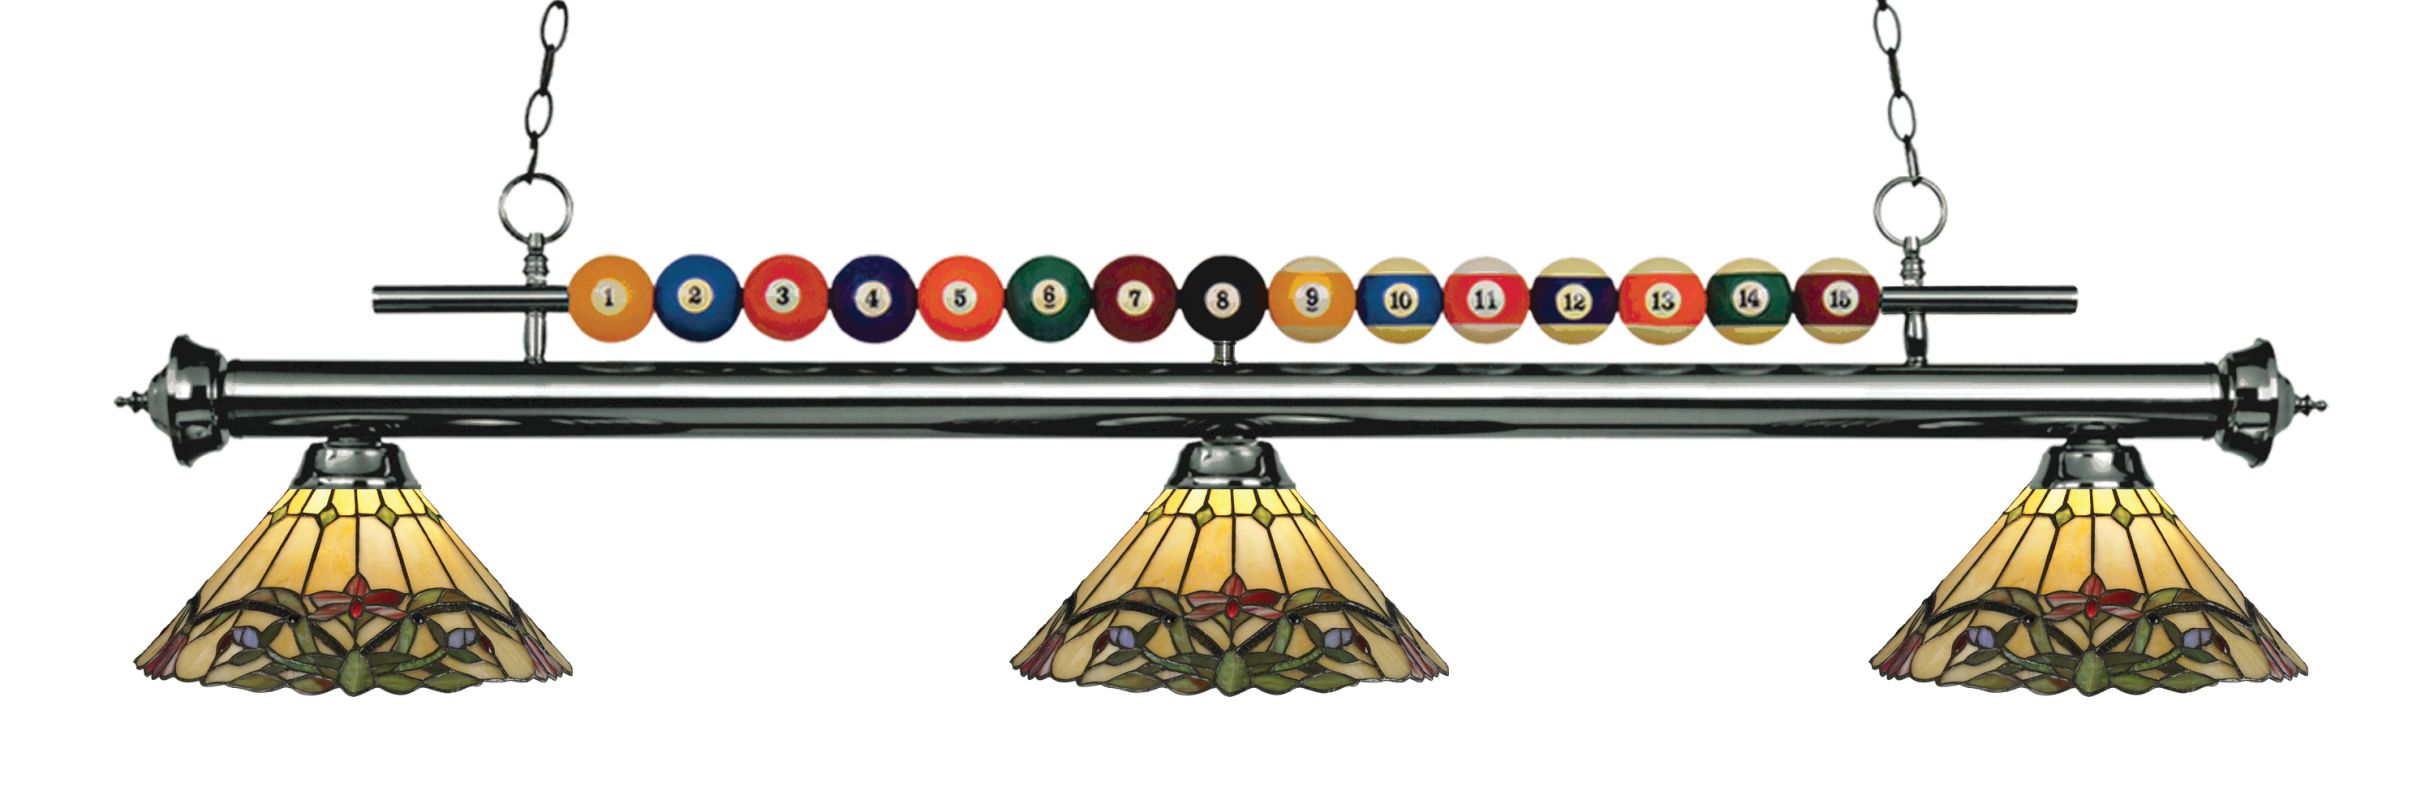 Z-Lite 170-Z14-49 Shark 3 Light Billiard Chandelier with Multi-Colored Sale $946.00 ITEM: bci2630346 ID#:170GM-Z14-49 UPC: 685659049077 :